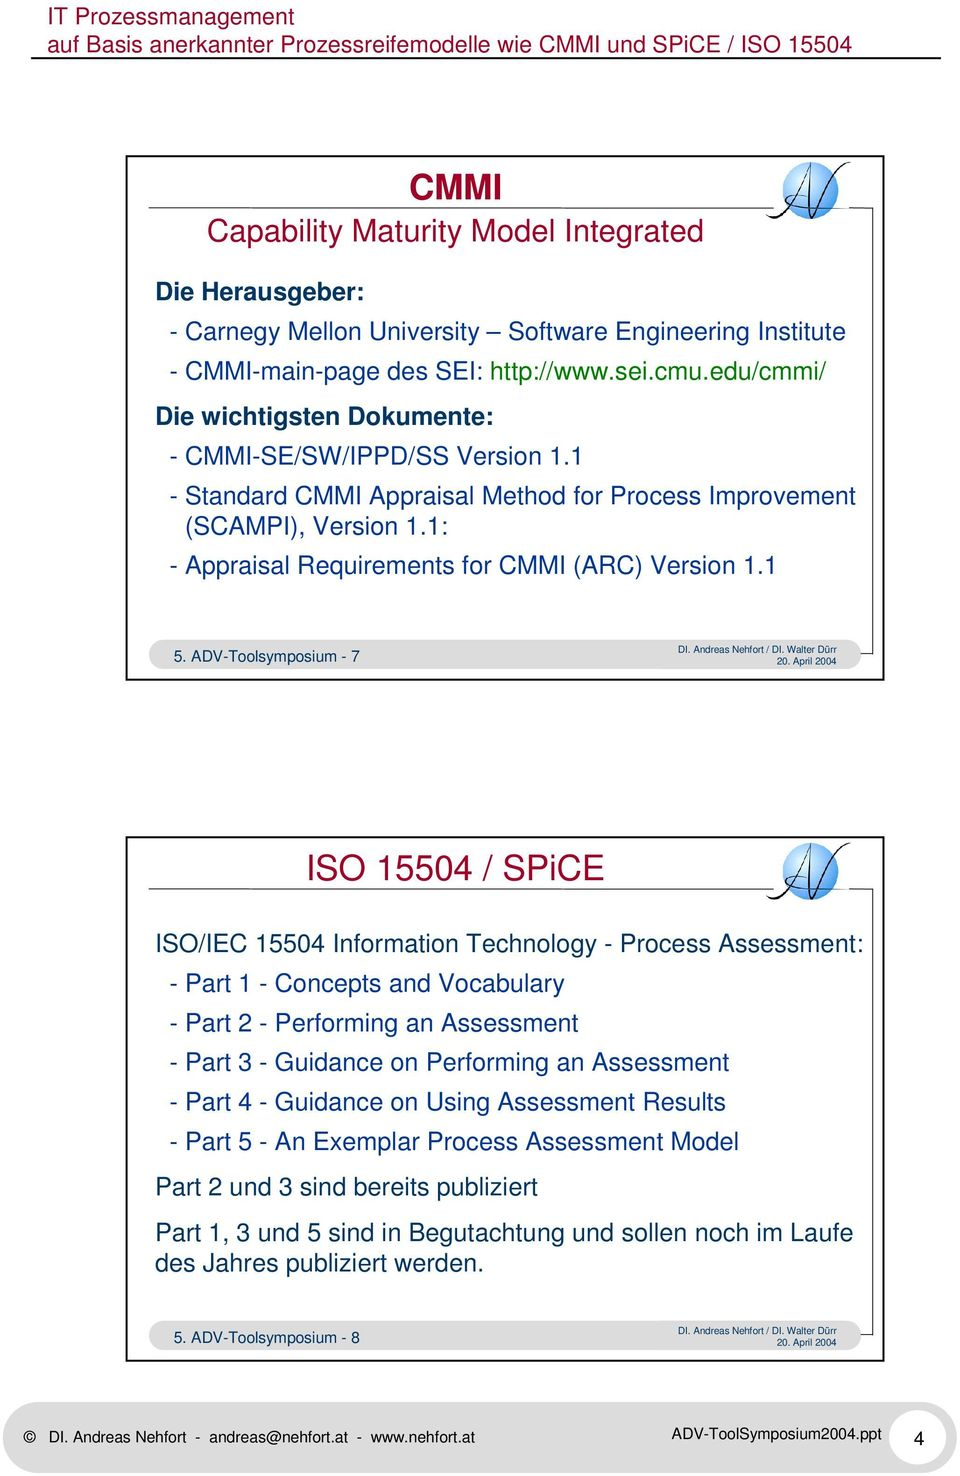 1 5. ADV-Toolsymposium - 7 ISO 15504 / SPiCE ISO/IEC 15504 Information Technology - Process Assessment: - Part 1 - Concepts and Vocabulary - Part 2 - Performing an Assessment - Part 3 - Guidance on